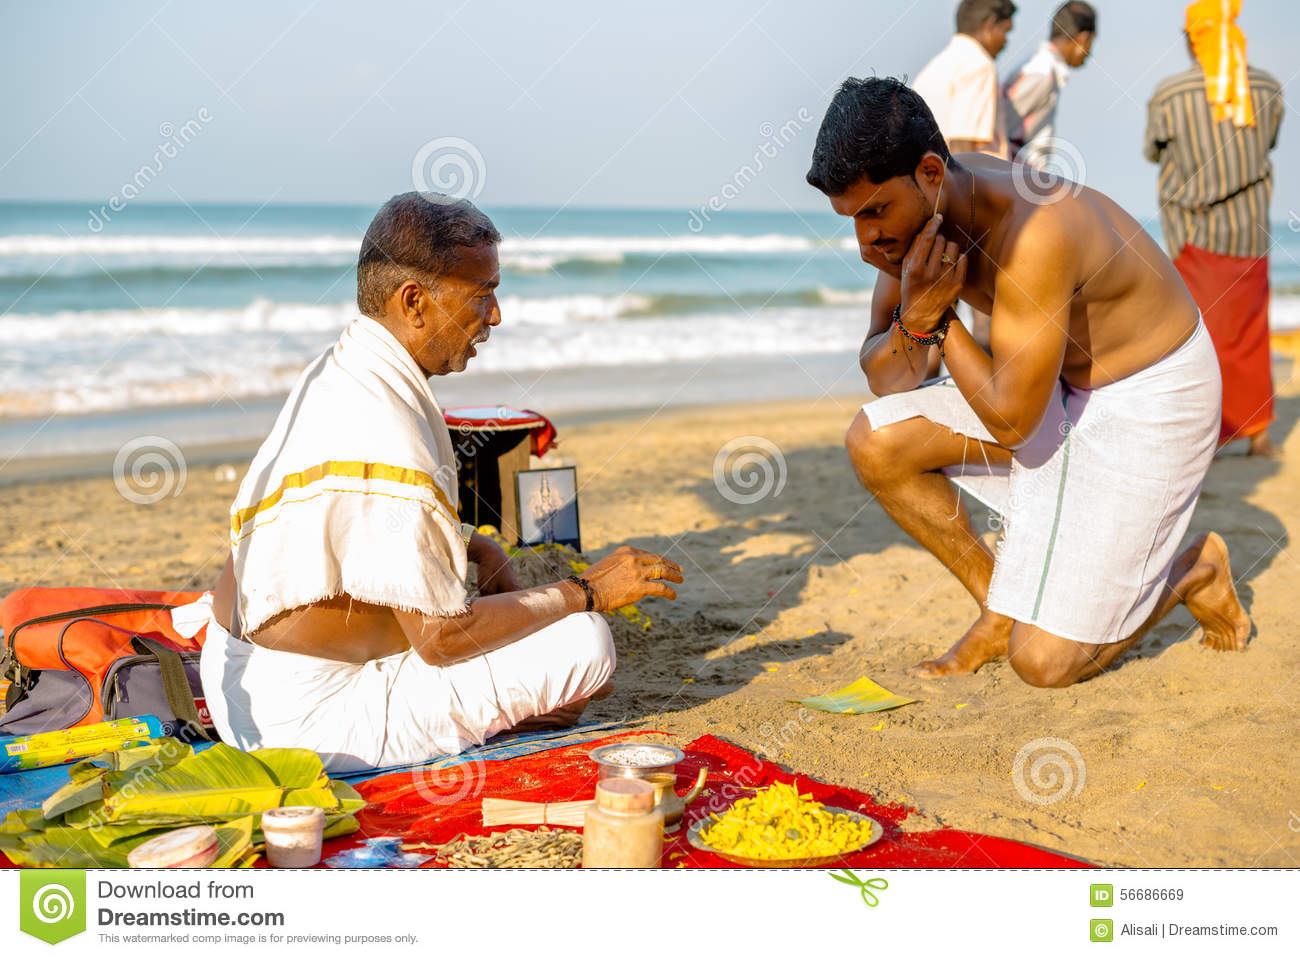 Varkala India  city pictures gallery : Varkala, India Februari 22, 2013: Hindoese Brahmaan met godsdienstig ...